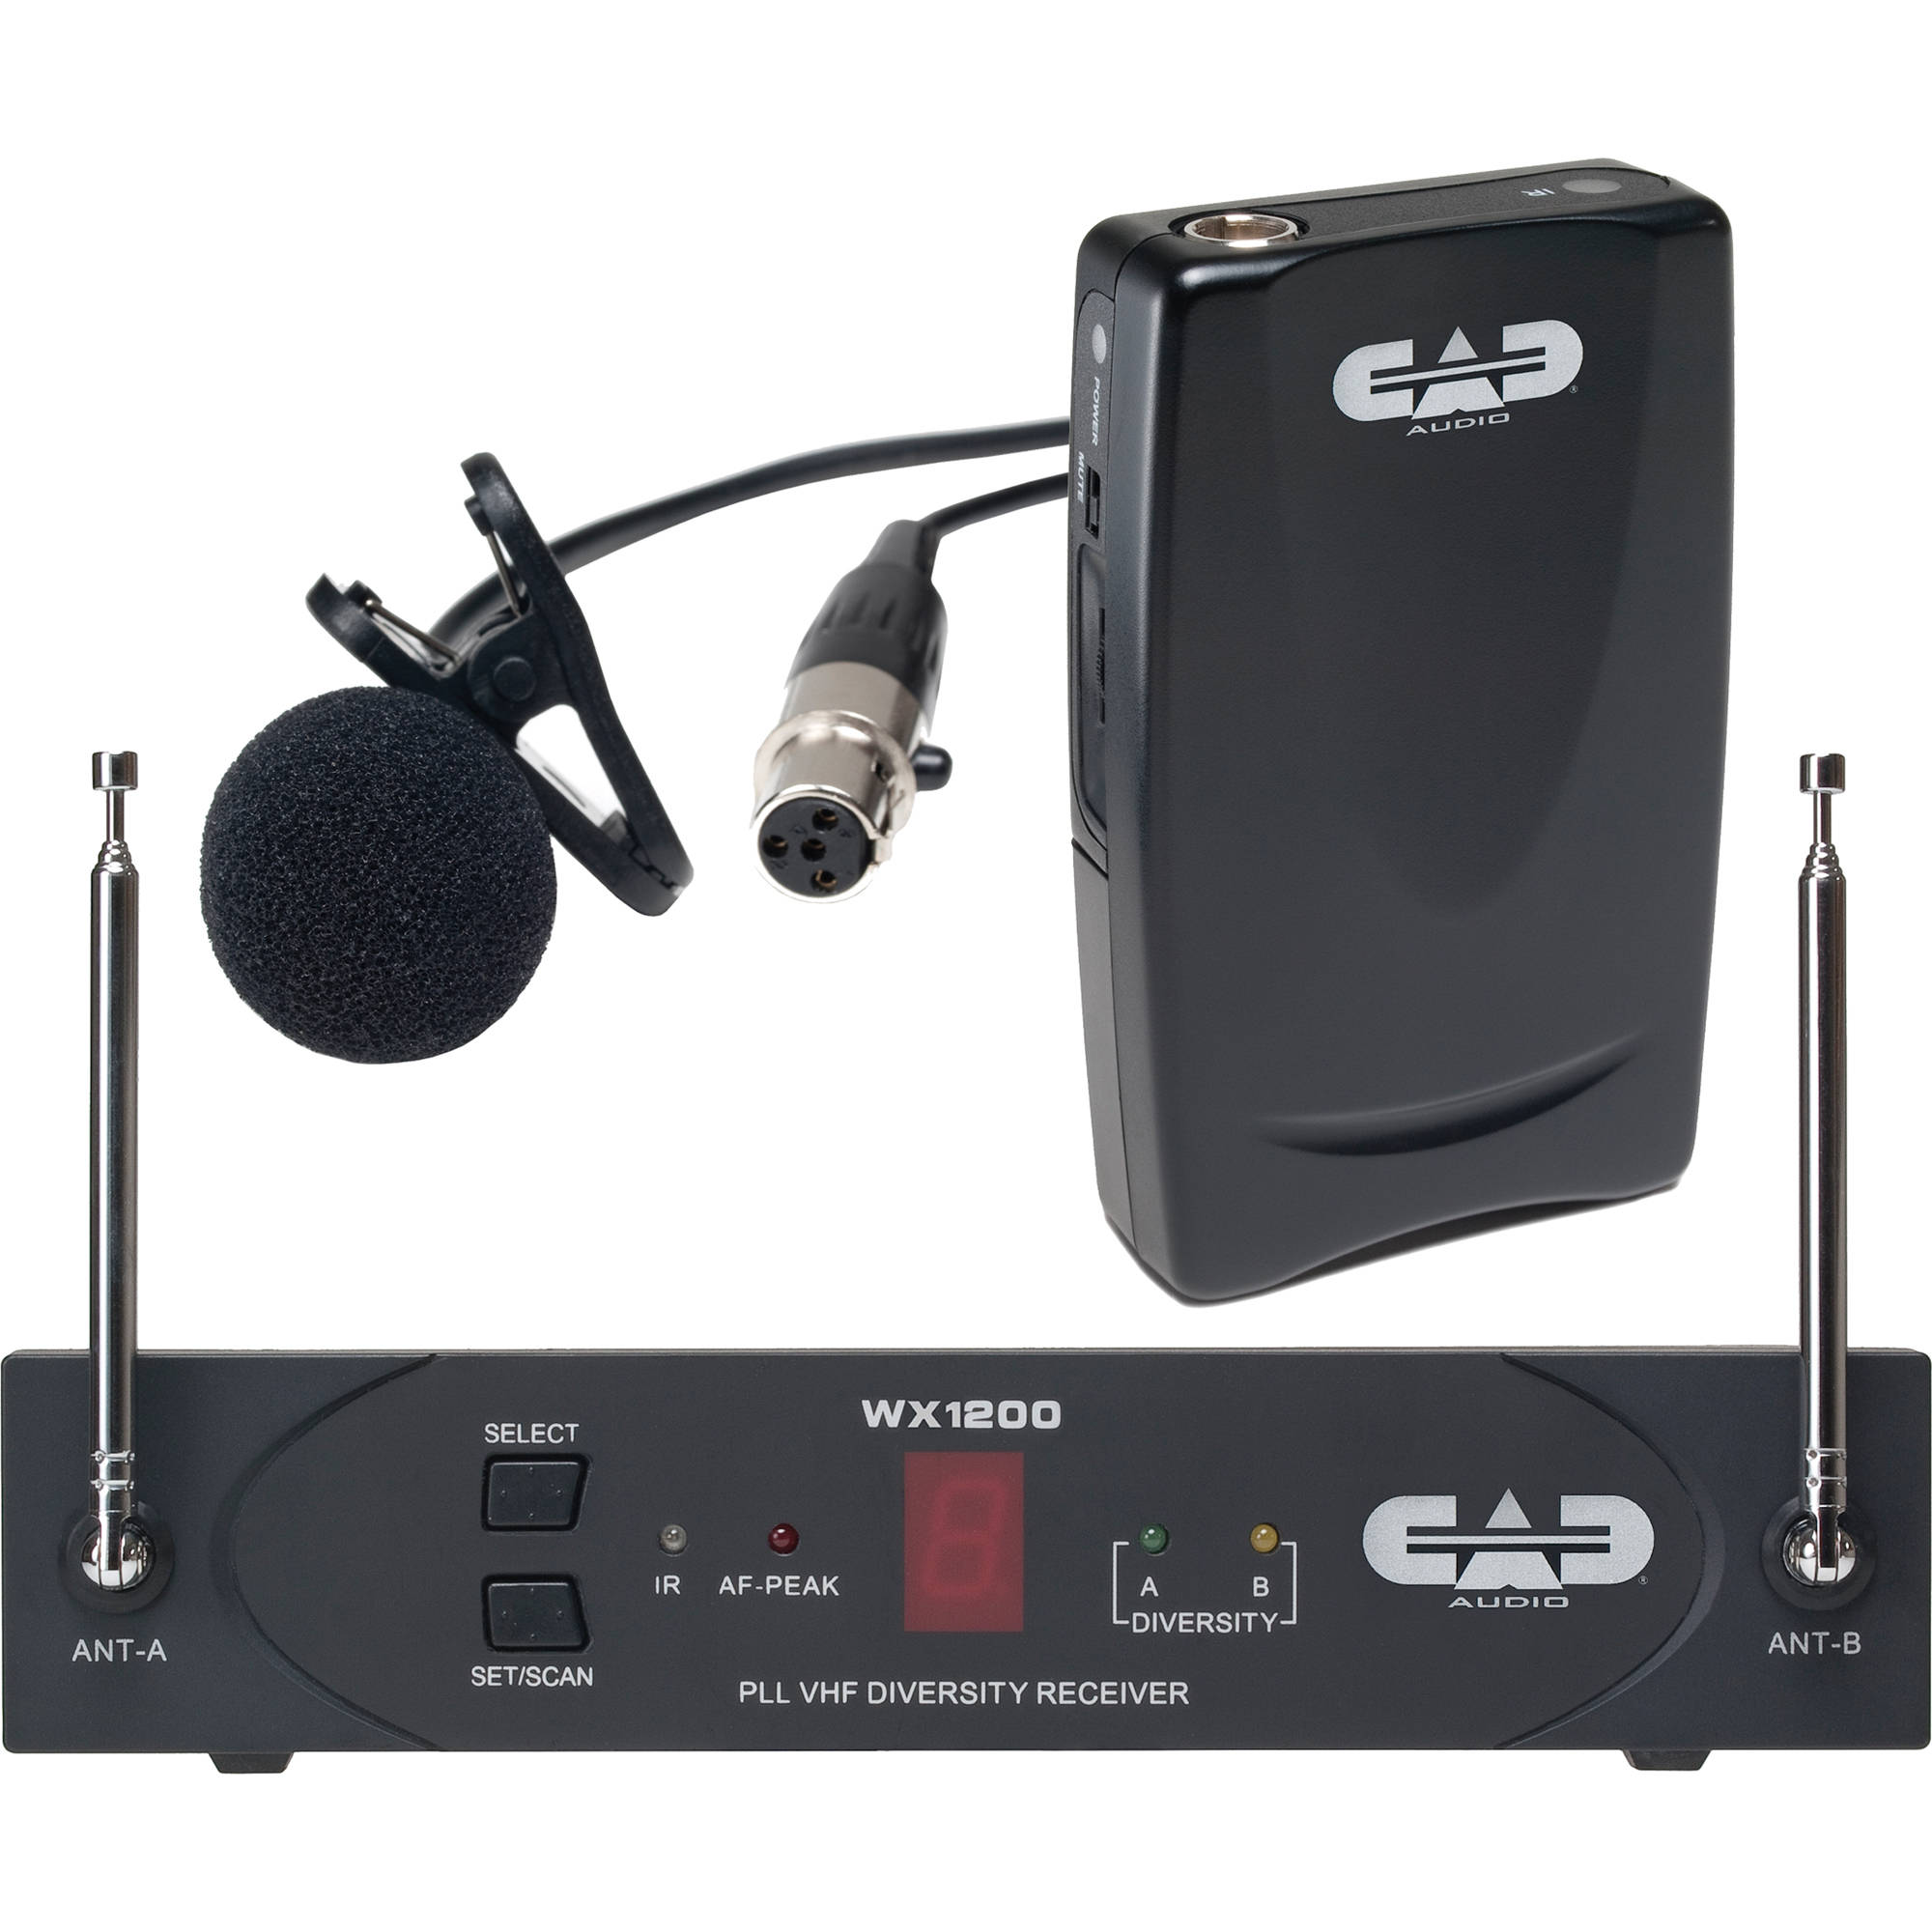 cad stagepass wx1210lav wireless lavalier microphone wx1210lav. Black Bedroom Furniture Sets. Home Design Ideas